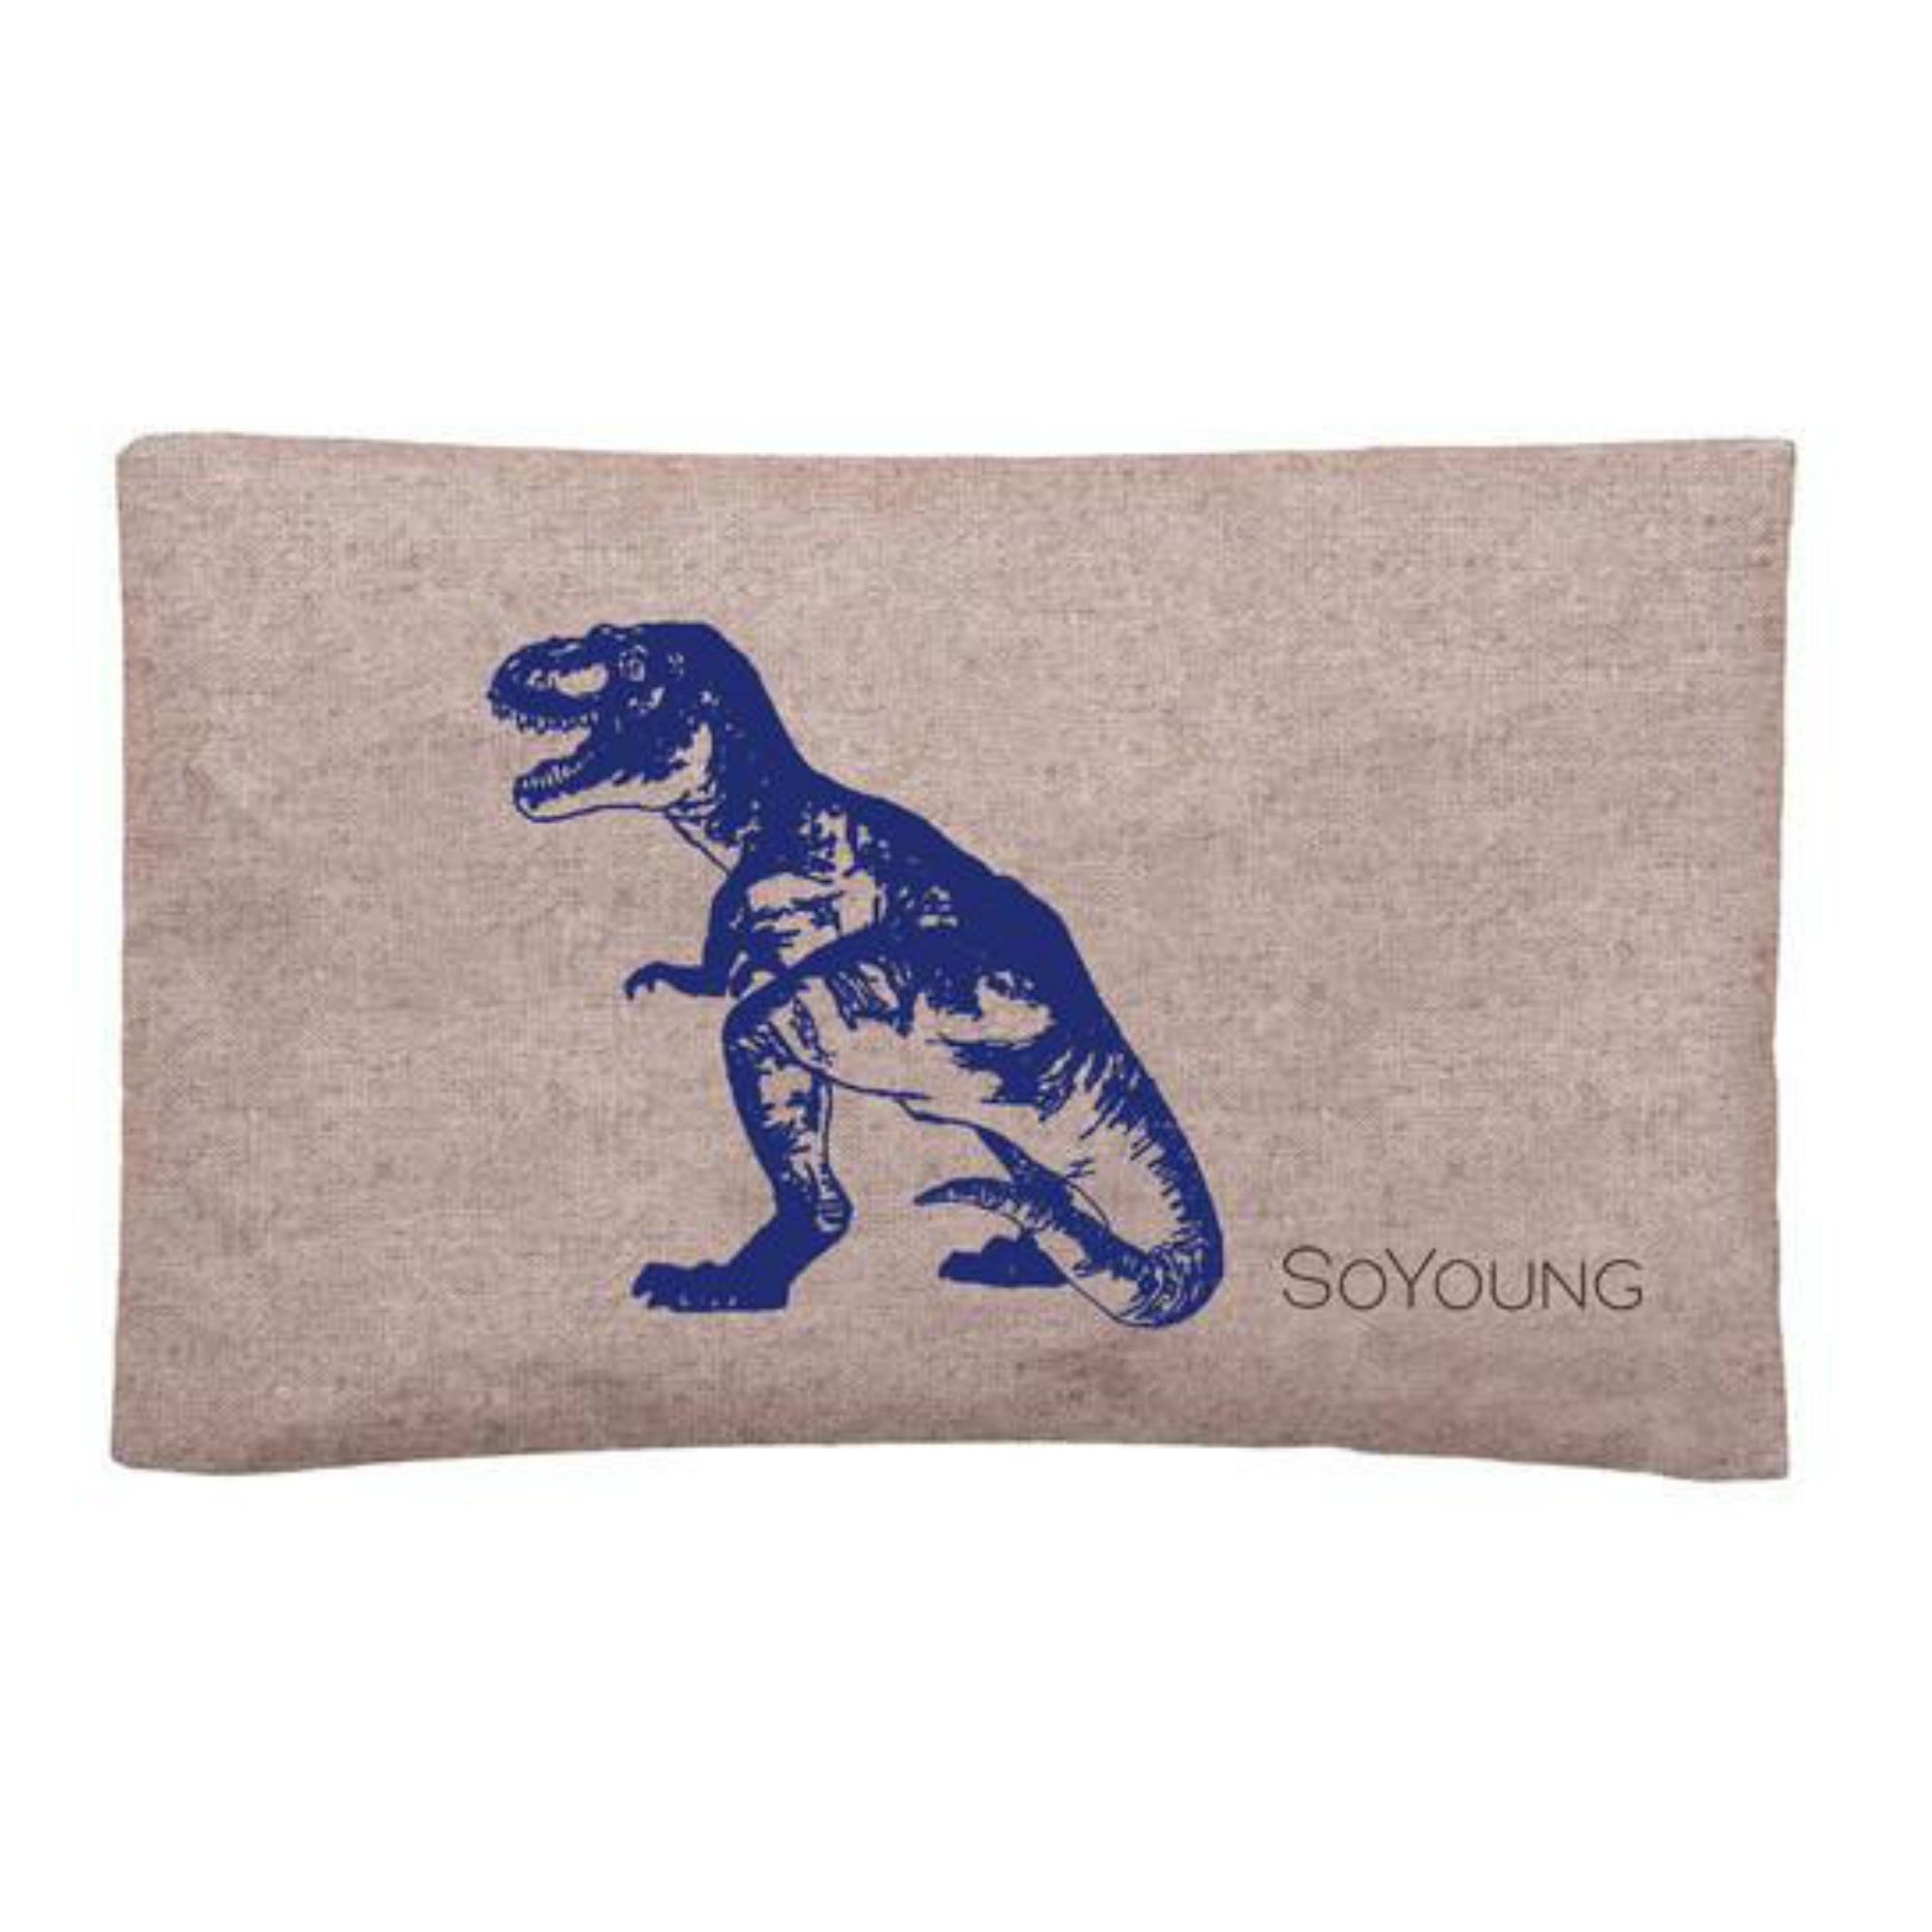 SoYoung Ice Pack - Blue Dinosaur